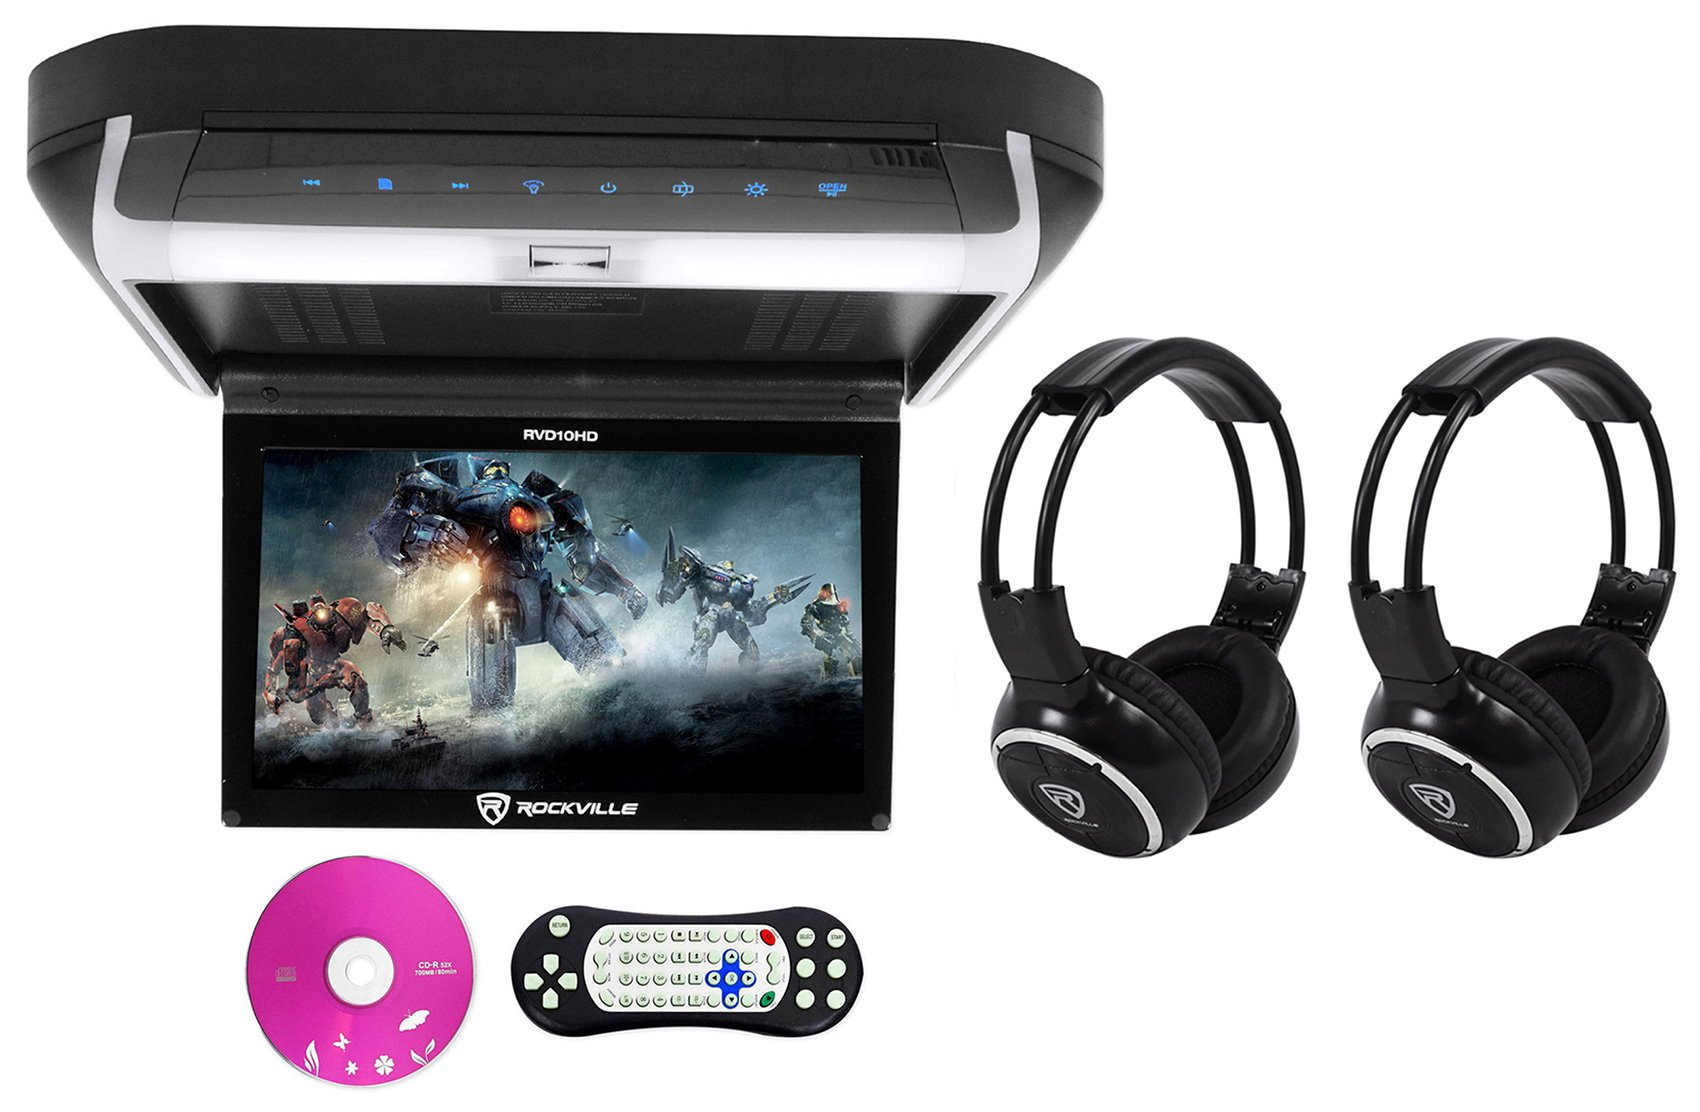 Package: Rockville RVD10HD-BK 10.1'' Black Flip Down Monitor With DVD Player, HDMI, USB/SD, Games, and LED Mood Light + (2) Rockville RFH3 Dual Channel Wireless Ir Headphones